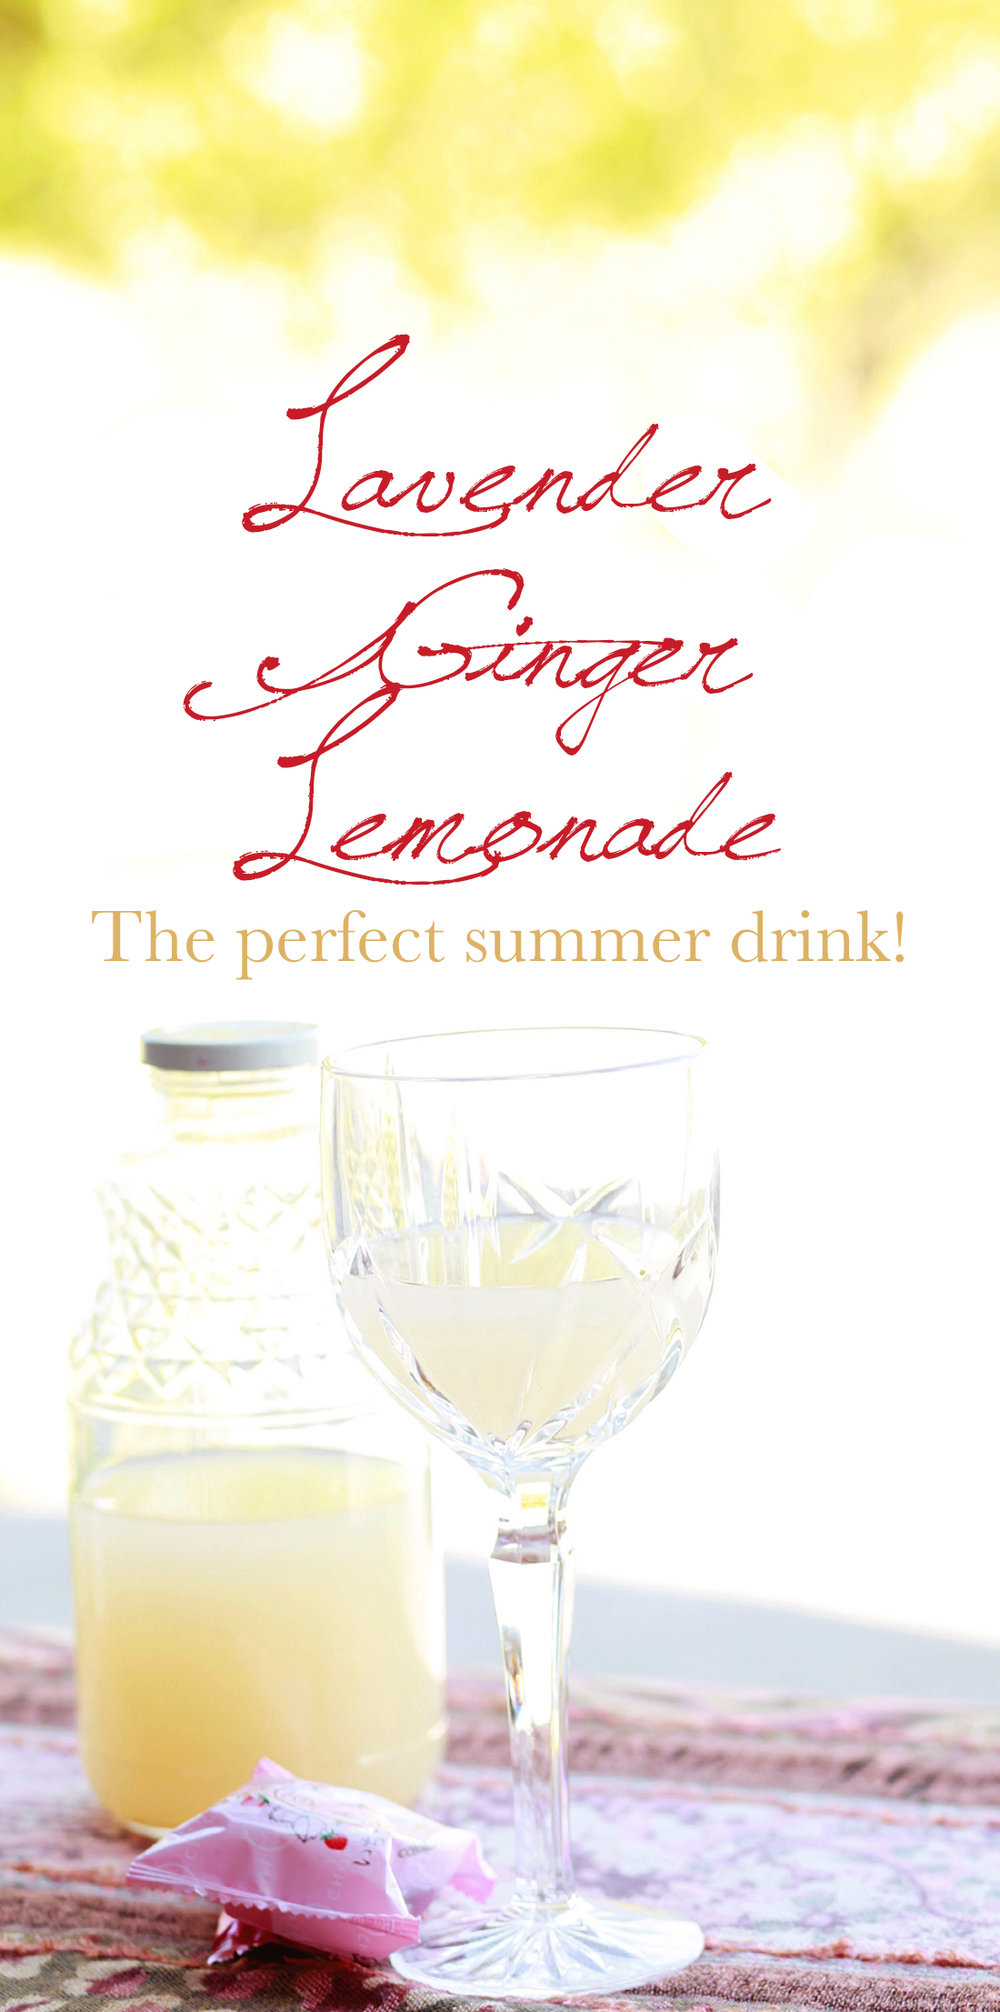 Lavender Ginger Lemonade Summer Cocktail Recipe | MALLORIE OWENS